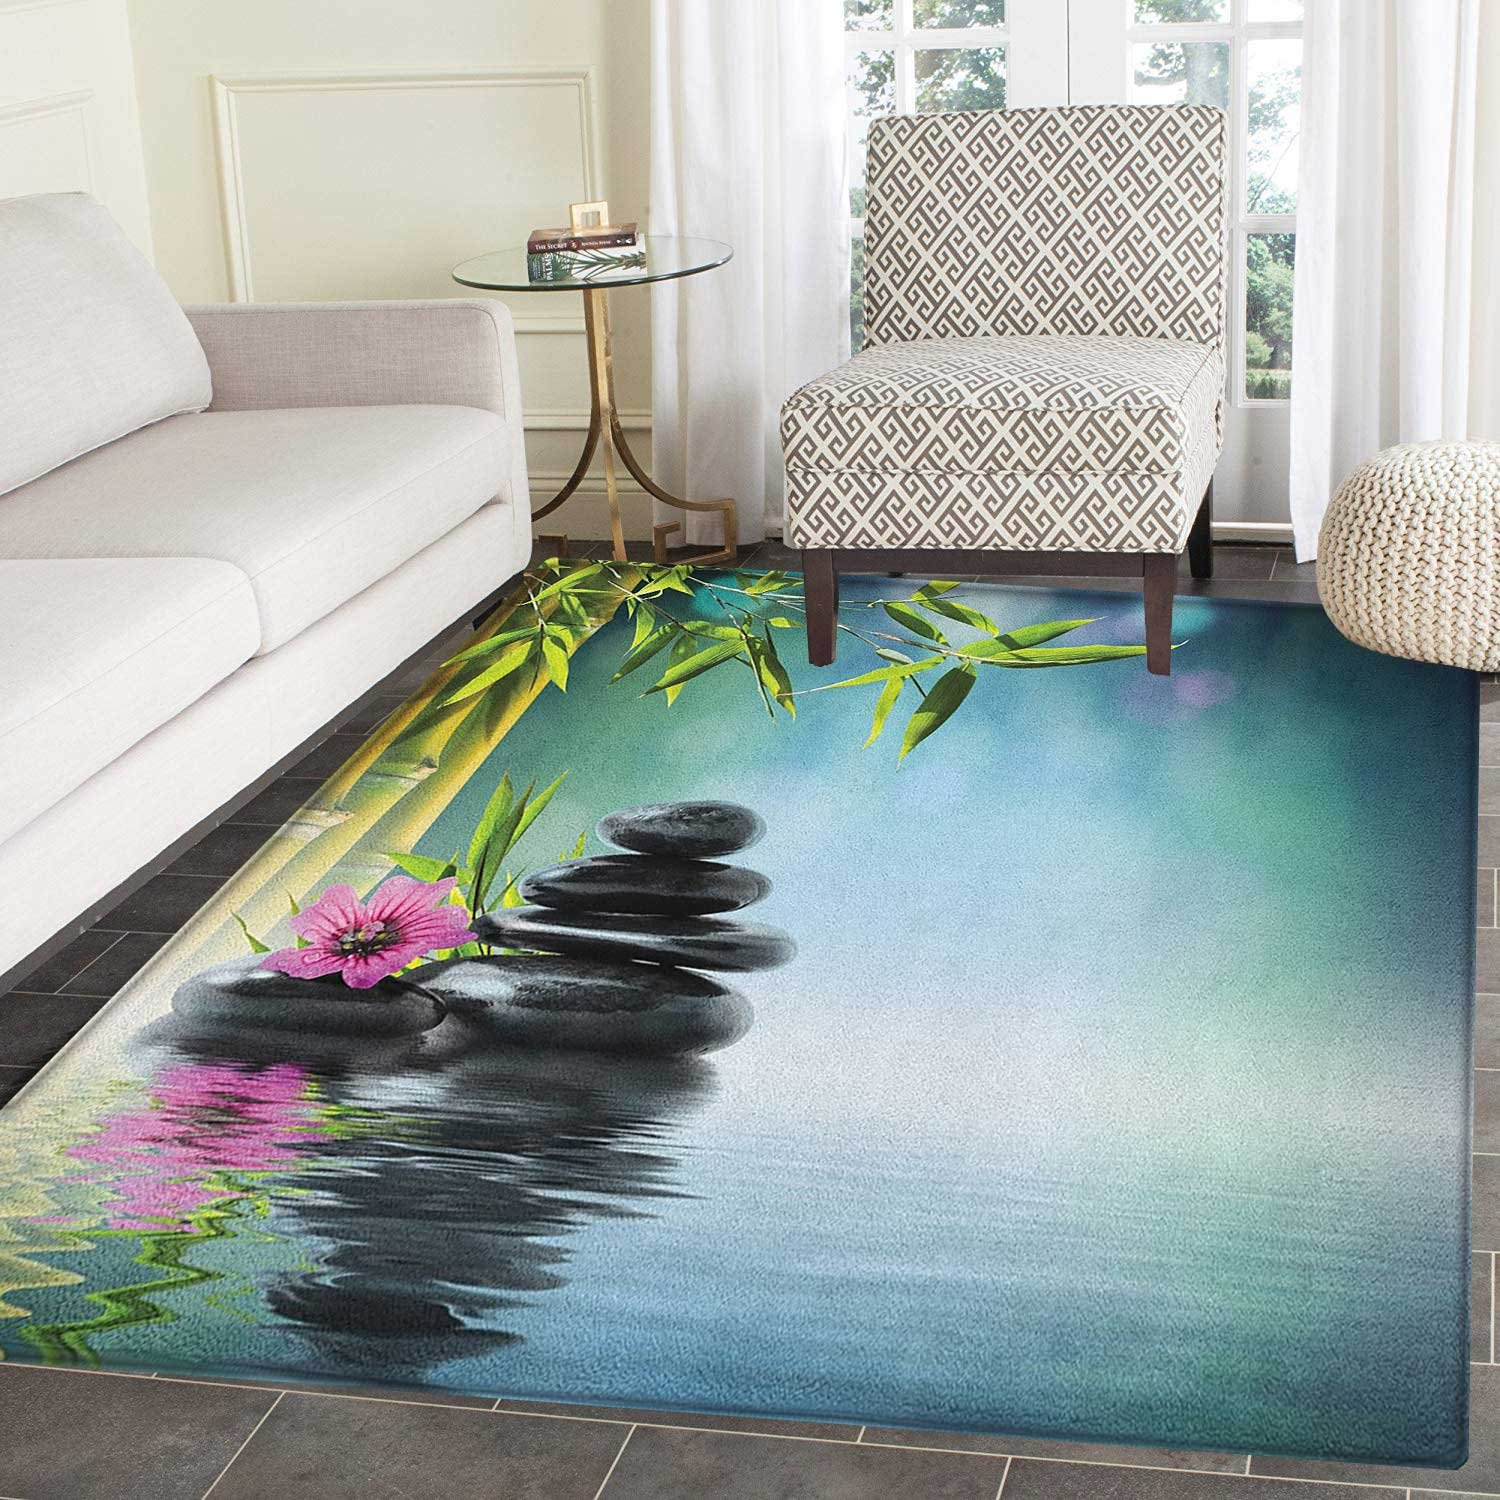 Zen Garden Area Silky Smooth Rugs Pink Flower Spa Stones and Bamboo Tree on the Water Relaxation Theraphy Peace Floor Mat Pattern 2'x3' Multicolor